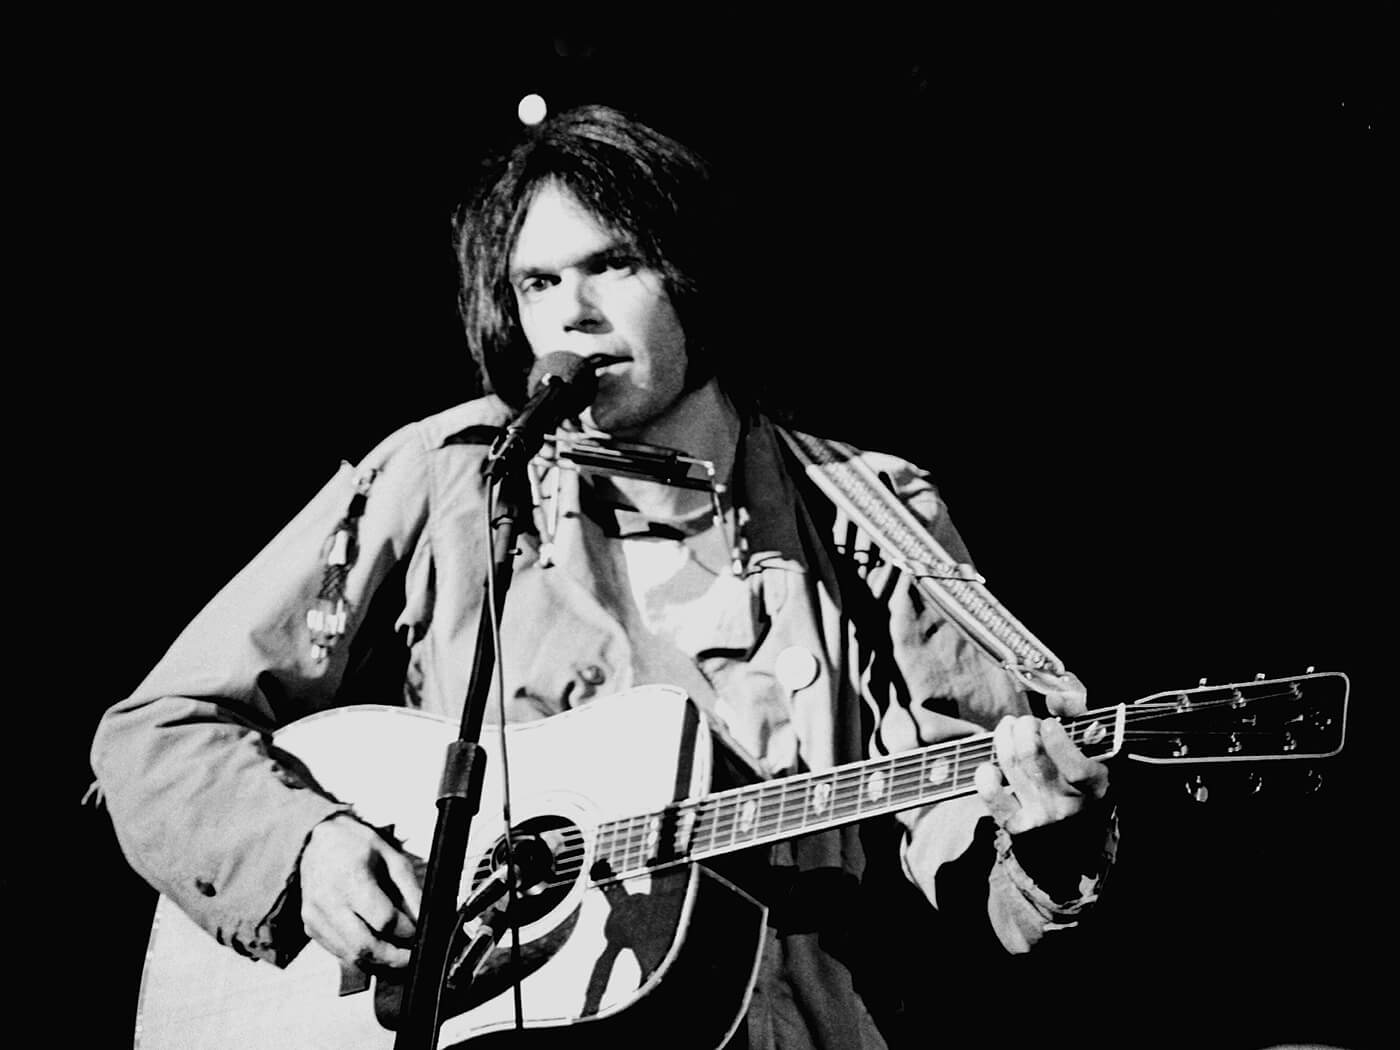 Neil Young to release Homegrown in early 2020 - UNCUT